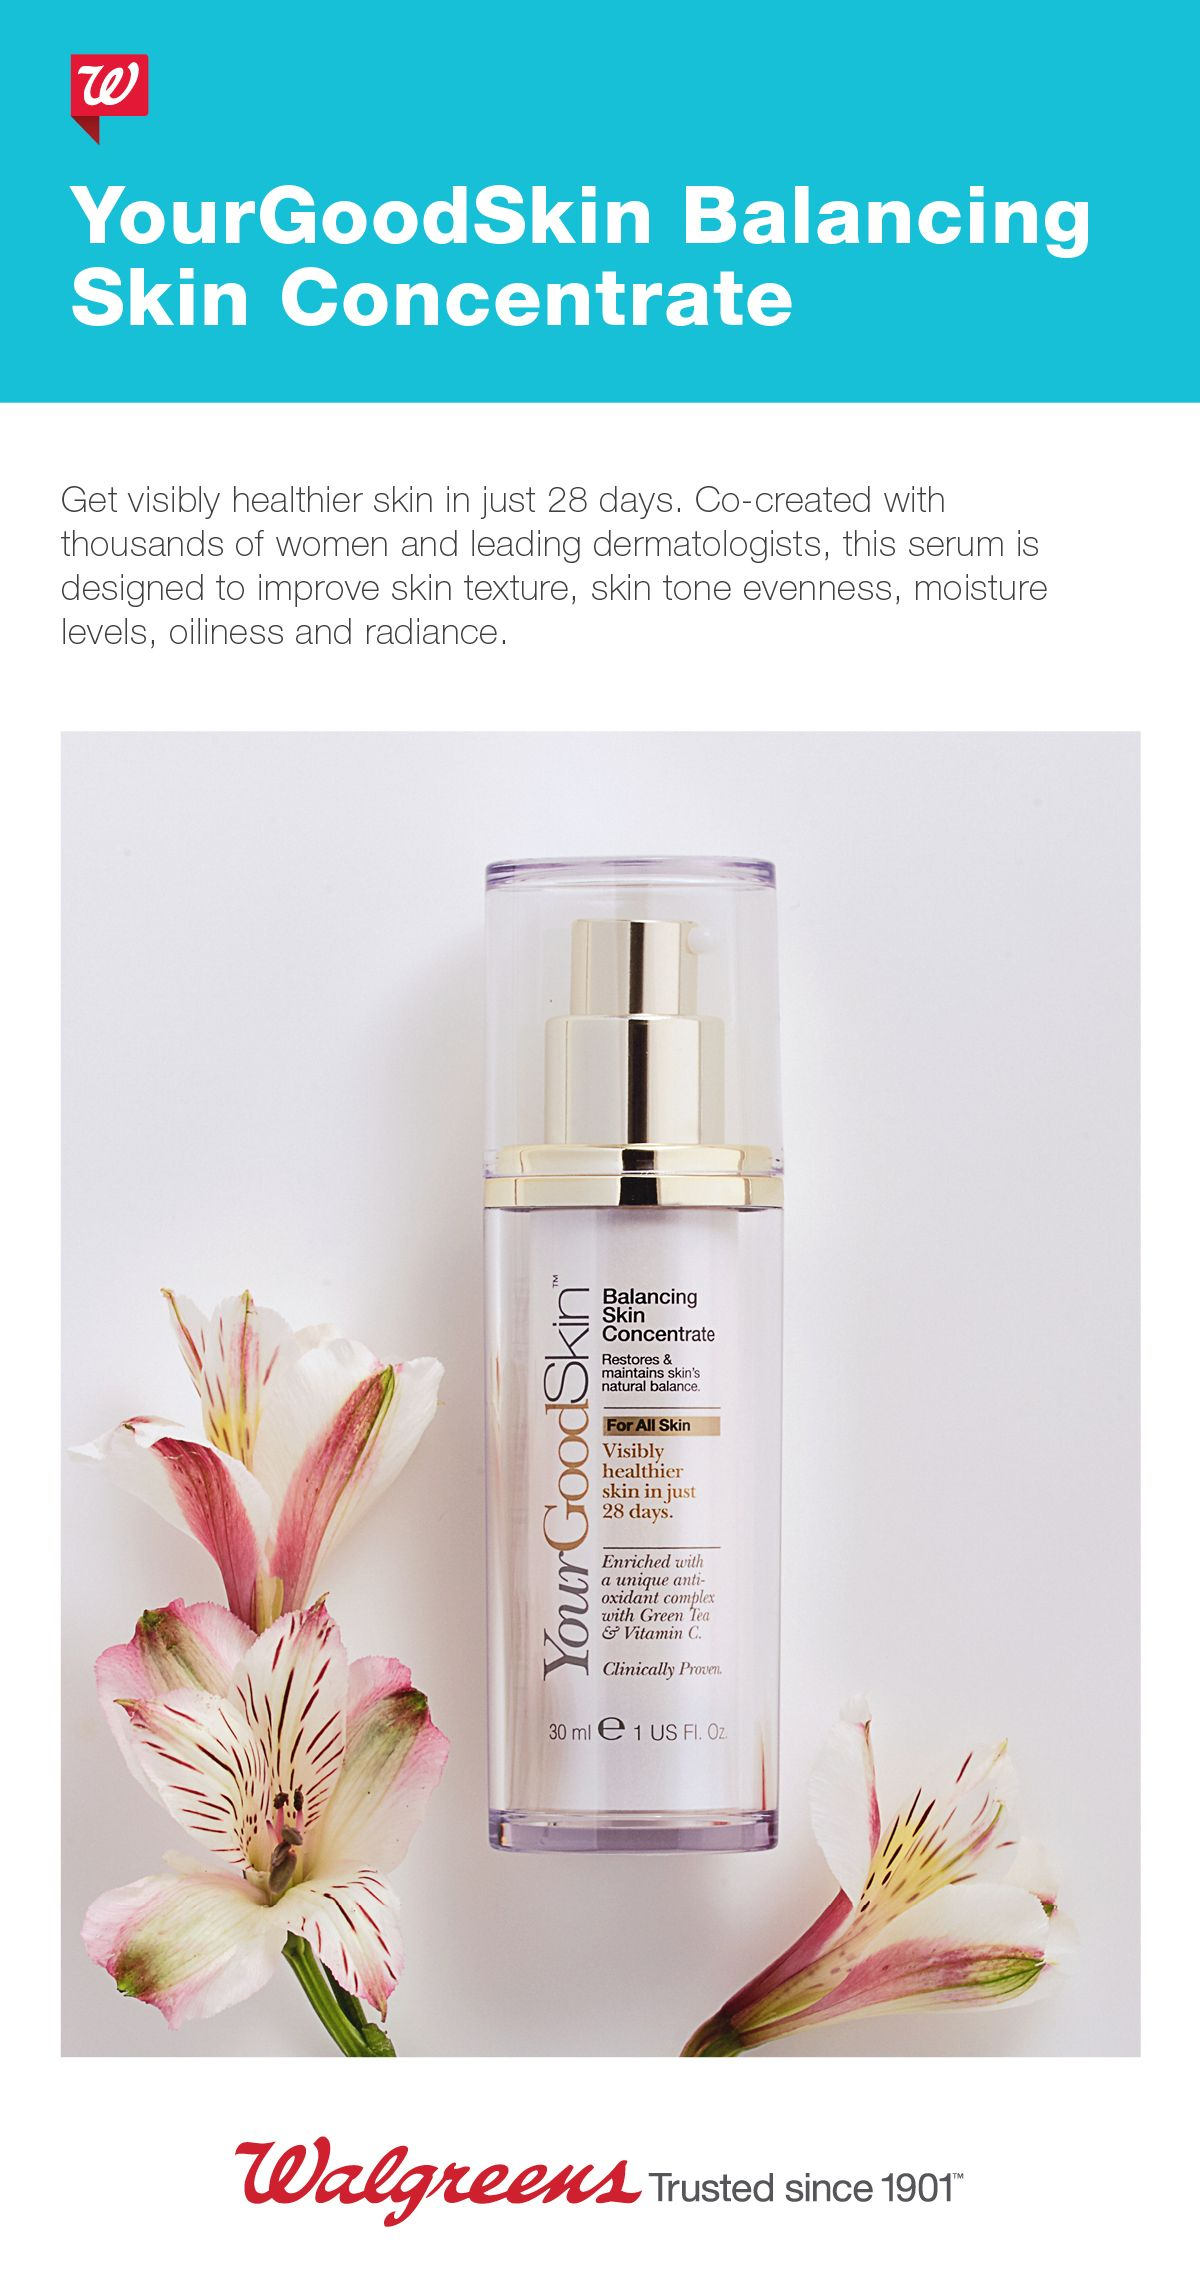 YourGoodSkin Balancing Skin Concentrate Beauty makeup